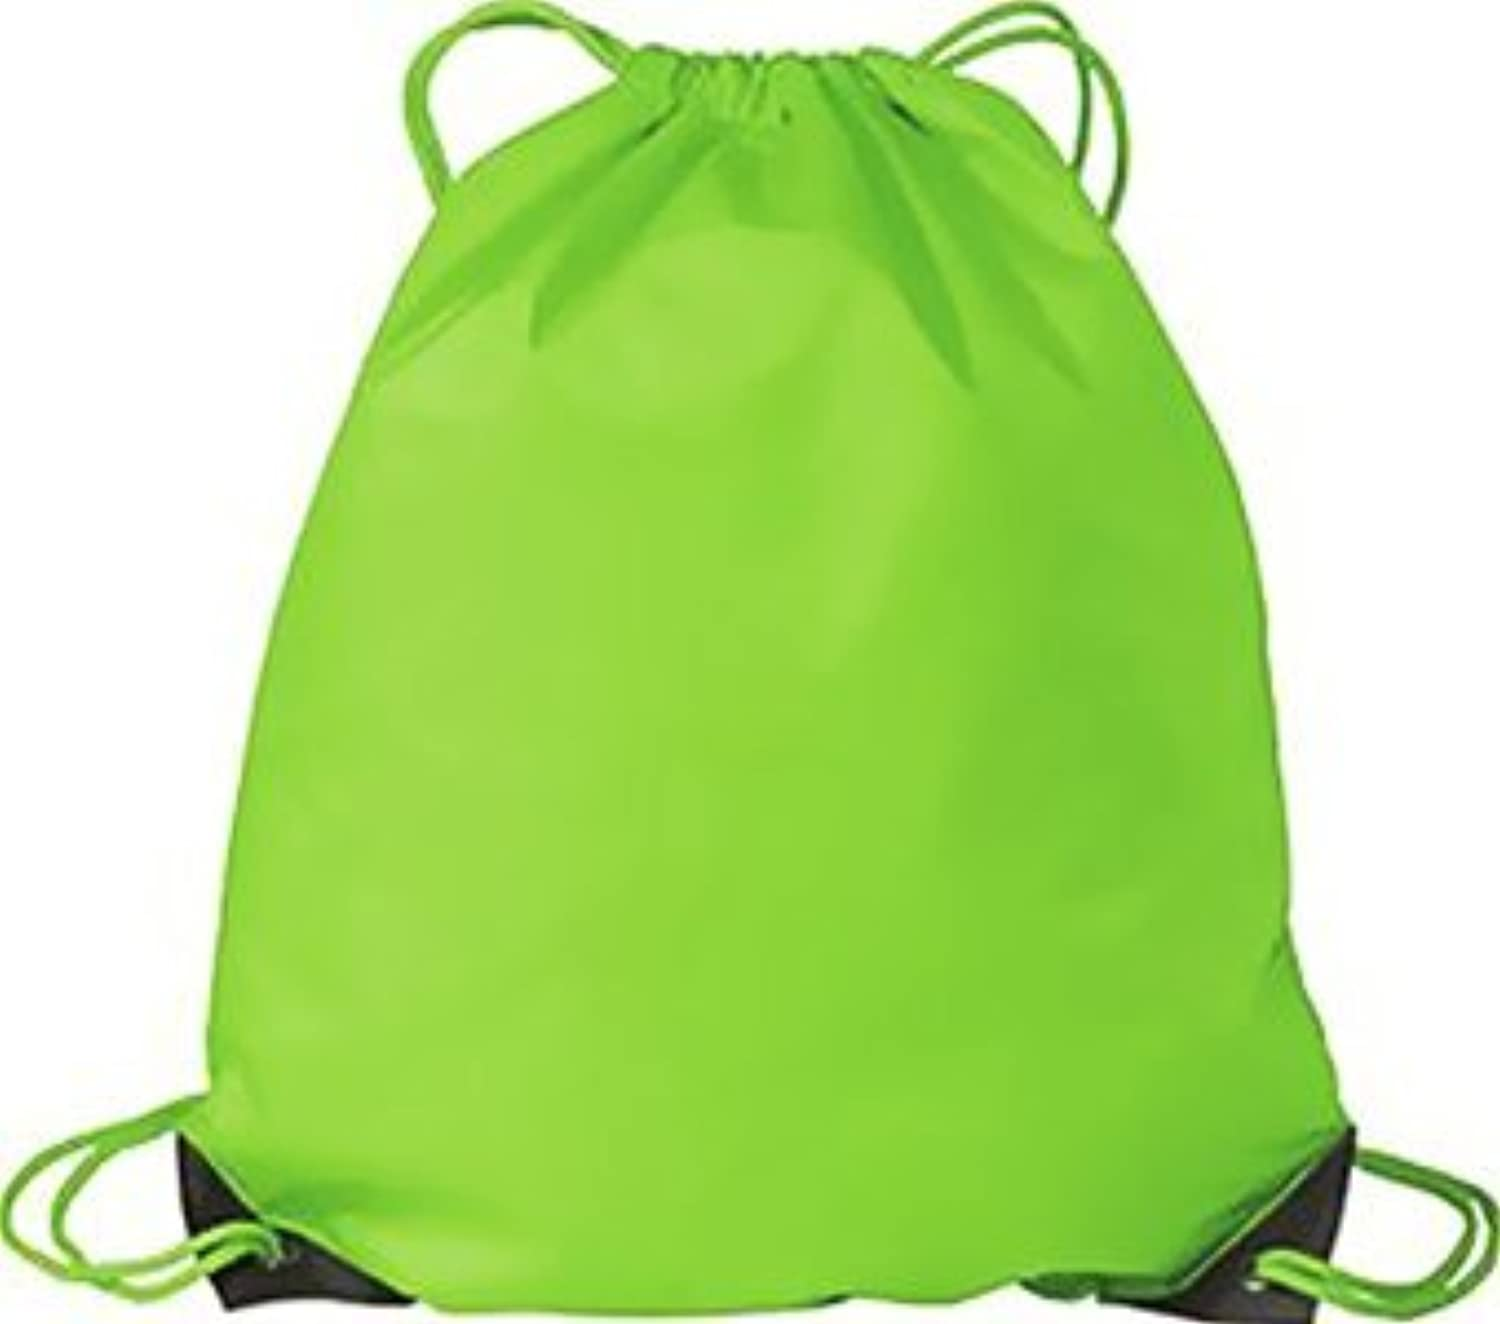 Port & CompanyCinch Pack (Bright Lime) by Port & Company